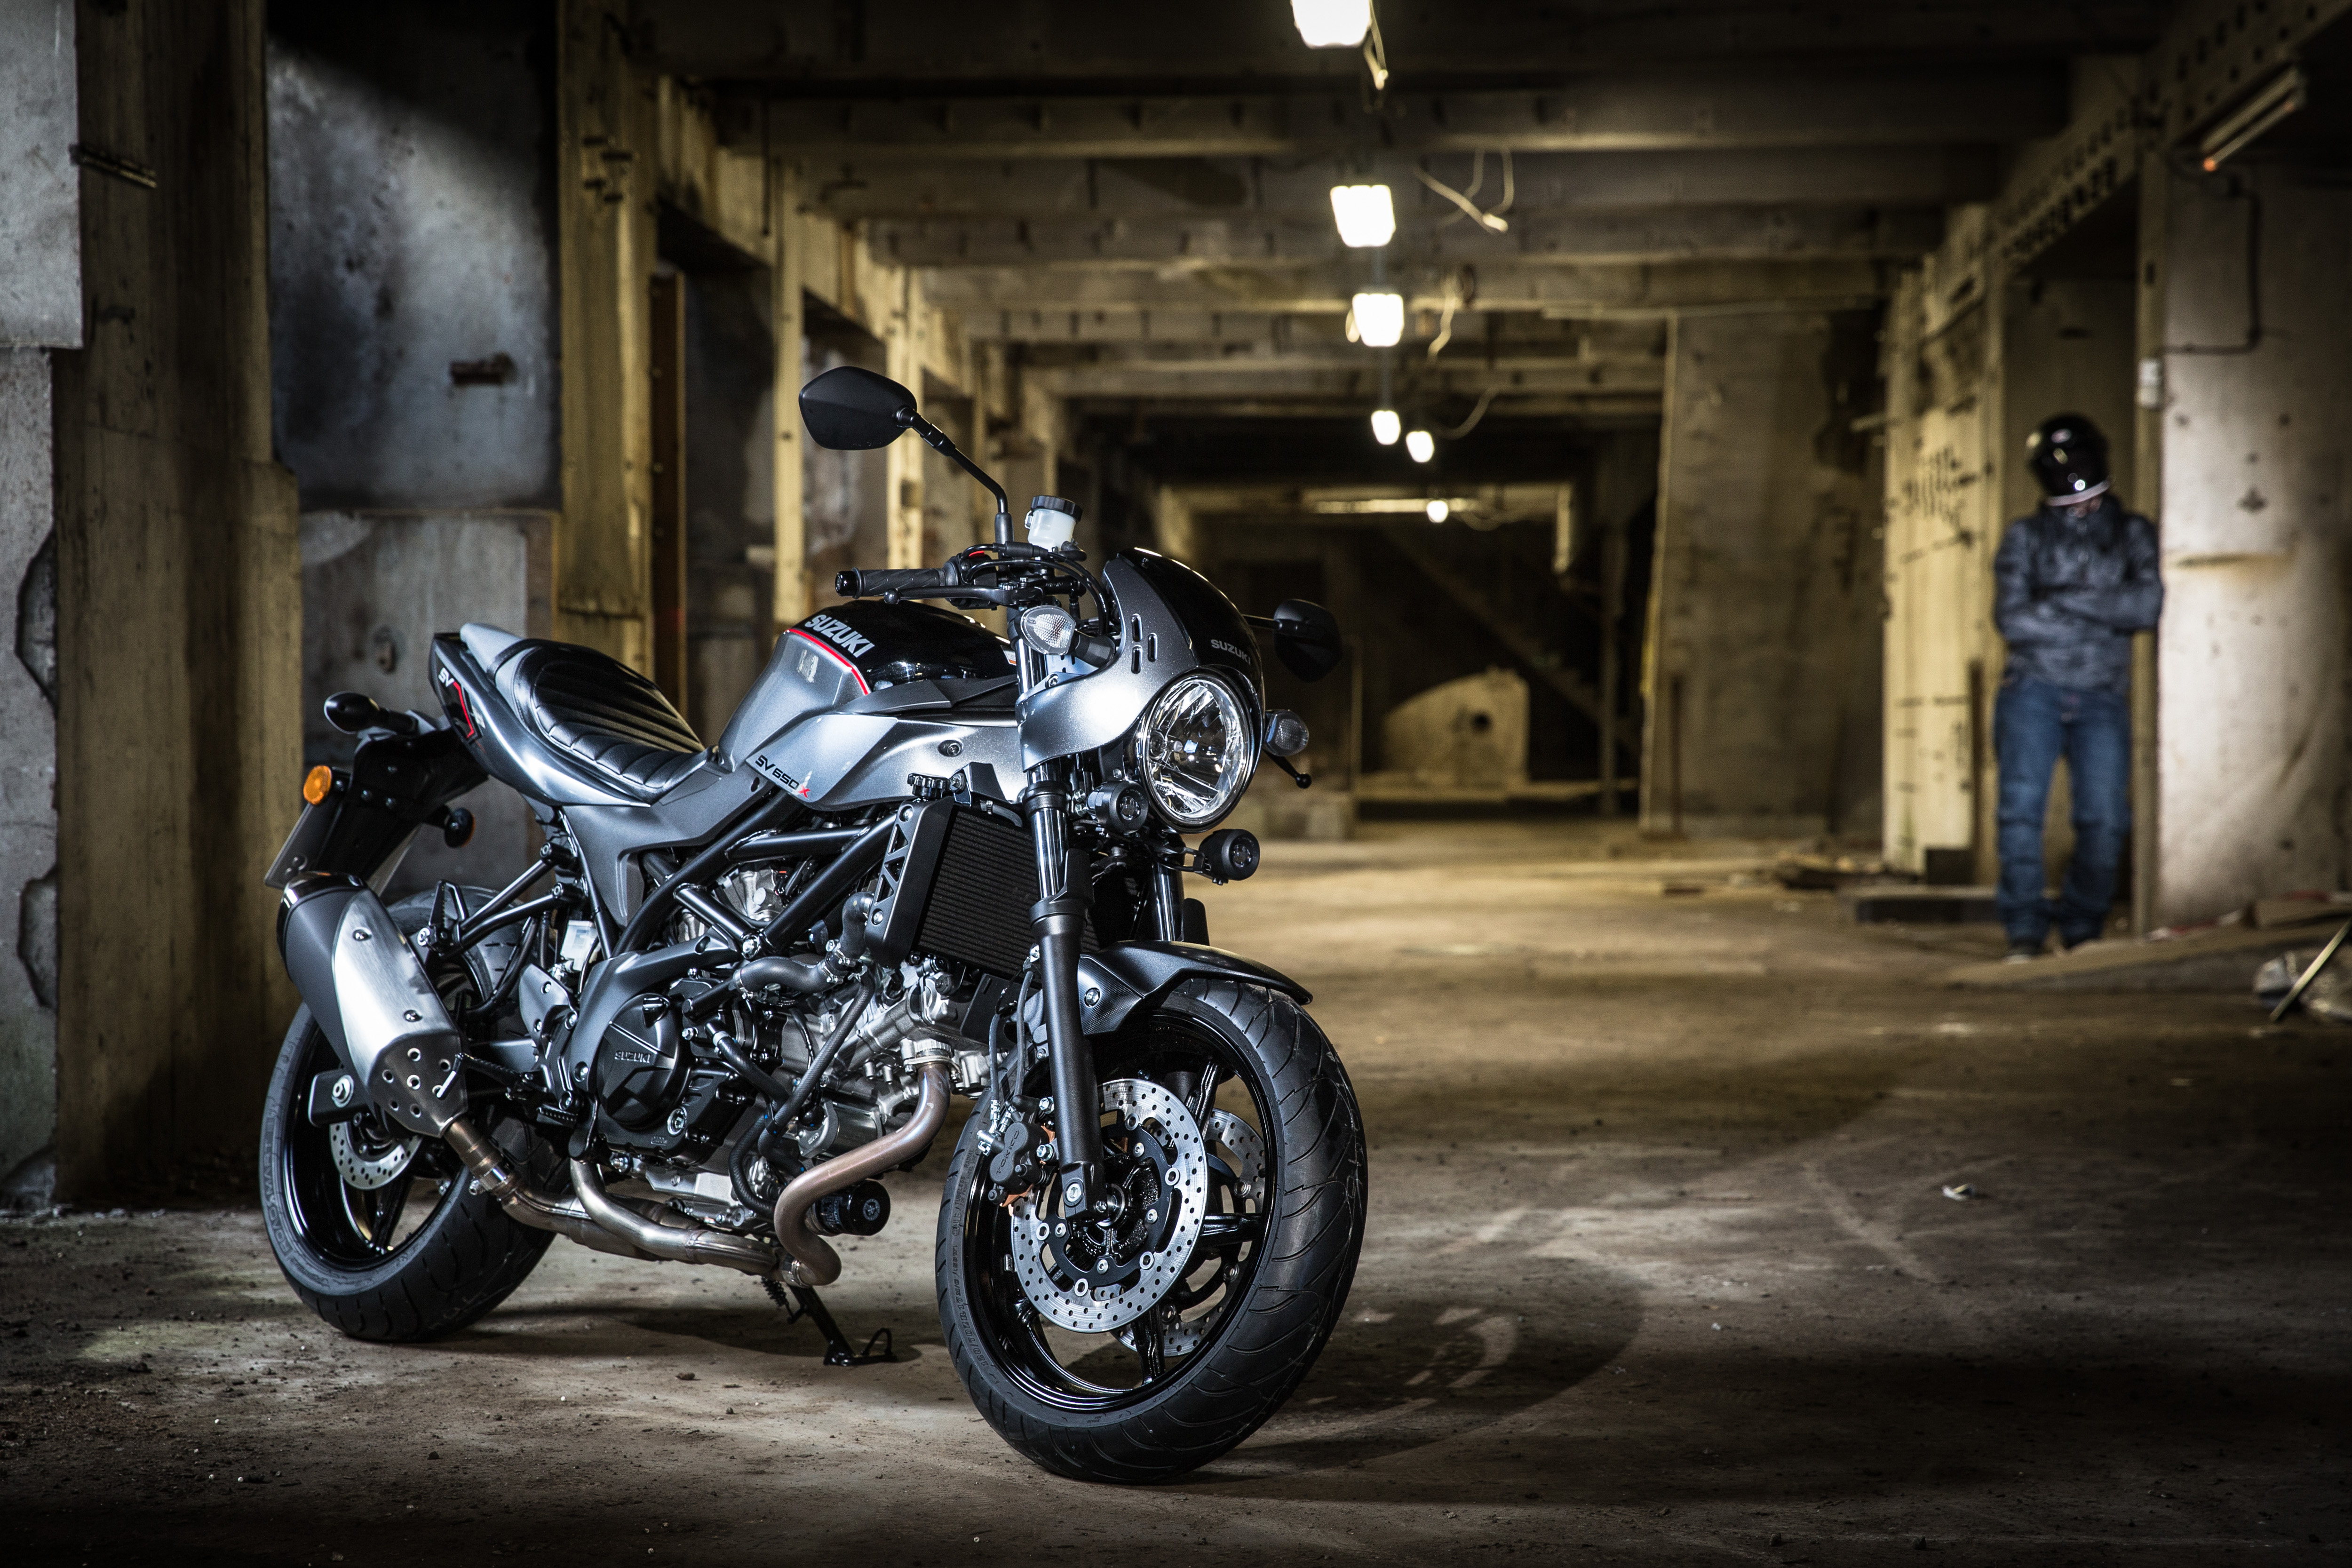 2018 Suzuki SV650X, a retro themed café racer version of its popular SV650.